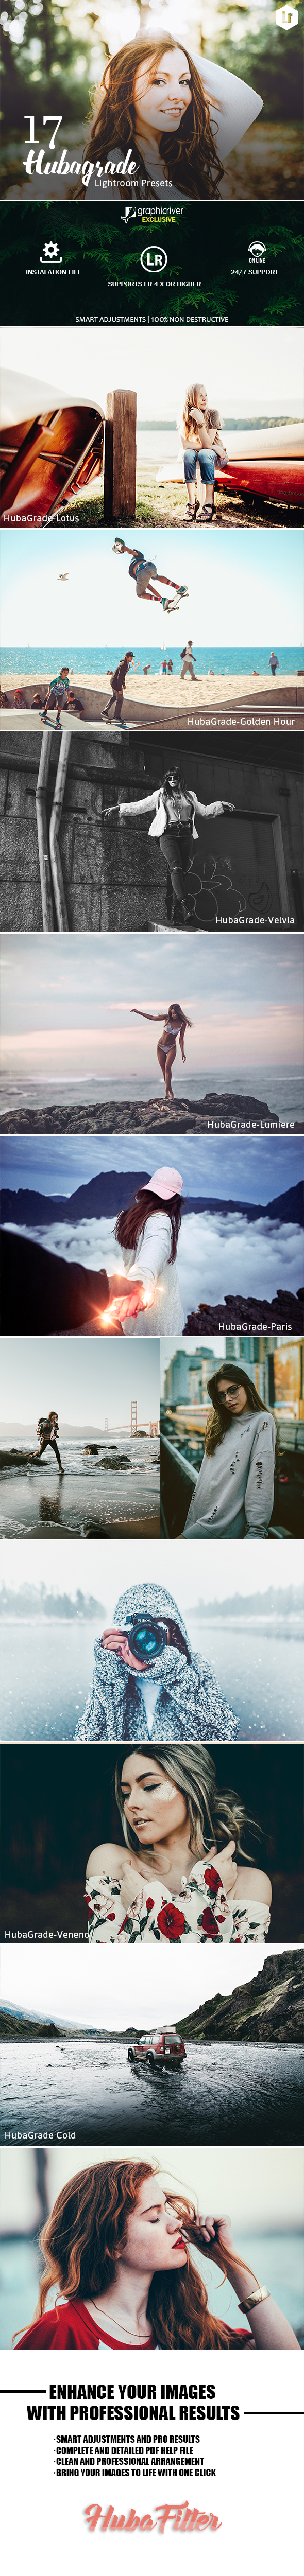 17 HubaGrade Lightroom Presets - Lightroom Presets Add-ons